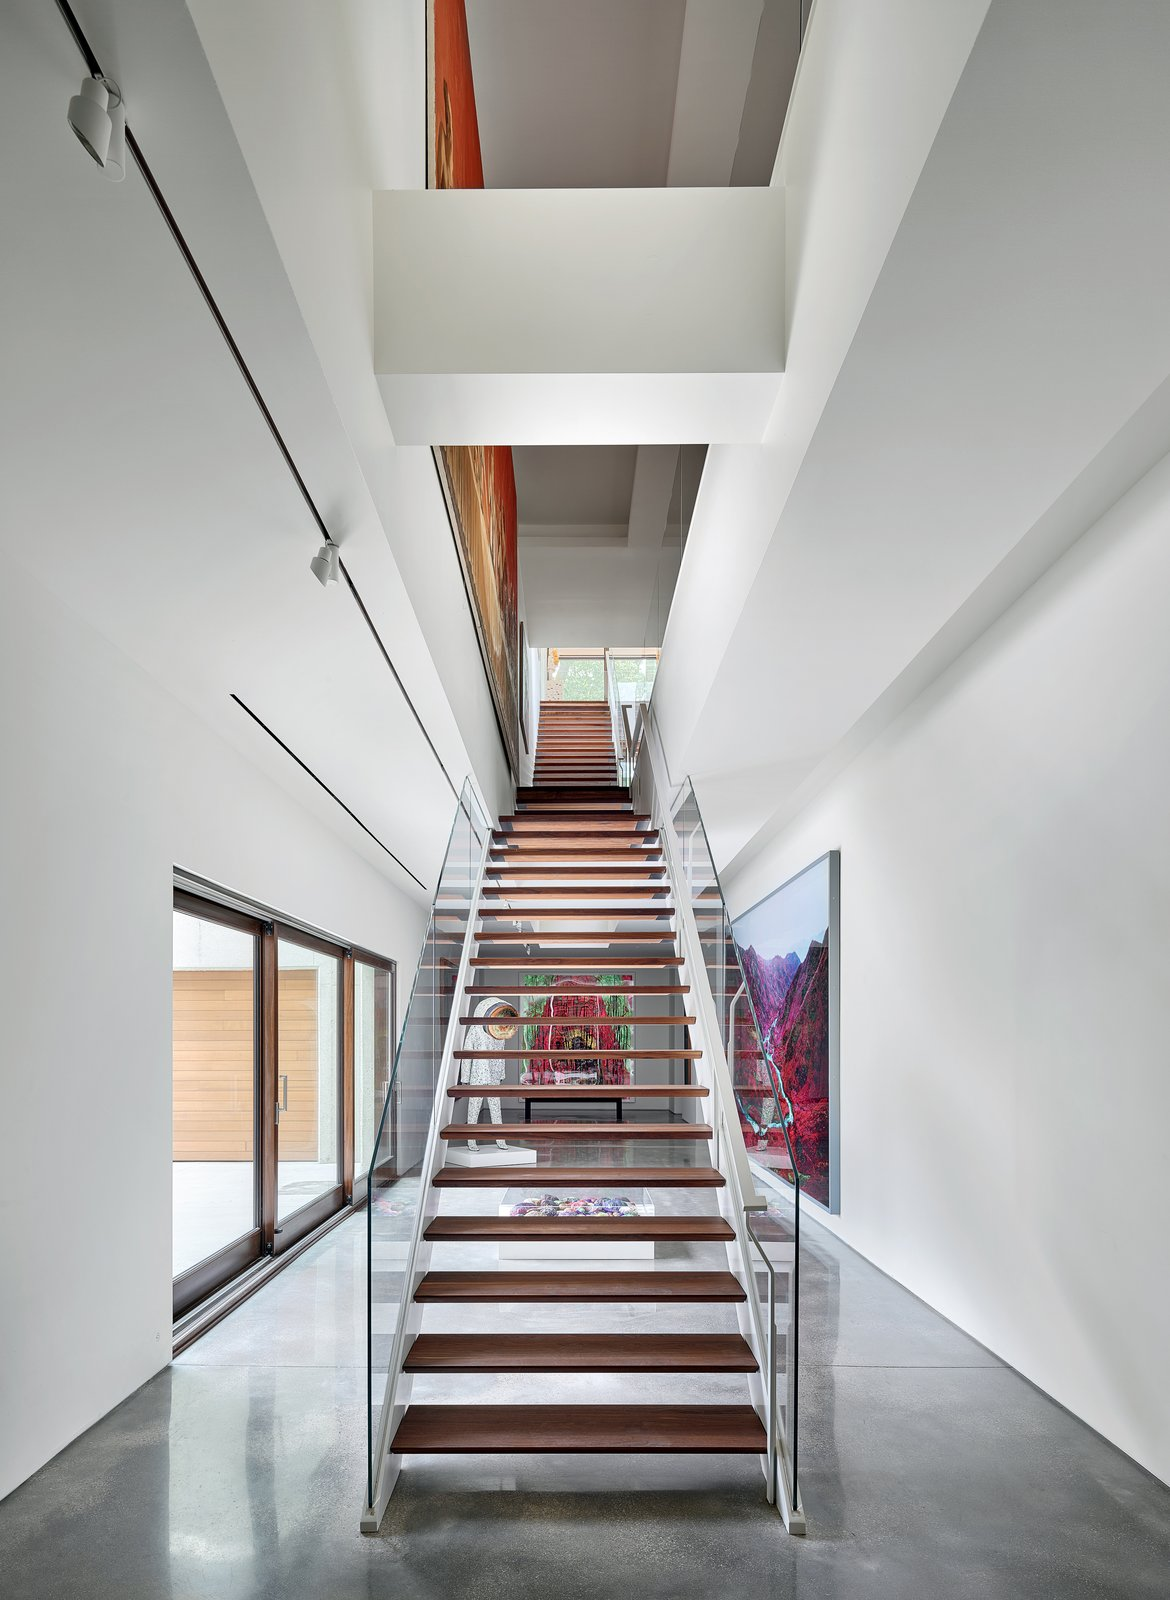 Staircase, Glass Railing, Wood Tread, and Metal Railing The long, wood stairs appear as a screen, quietly revealing artwork between levels and spaces.   Photo 10 of 23 in A Luminous, Eco-Friendly Abode Is Completed With its Own Modern Art Gallery from Artery House